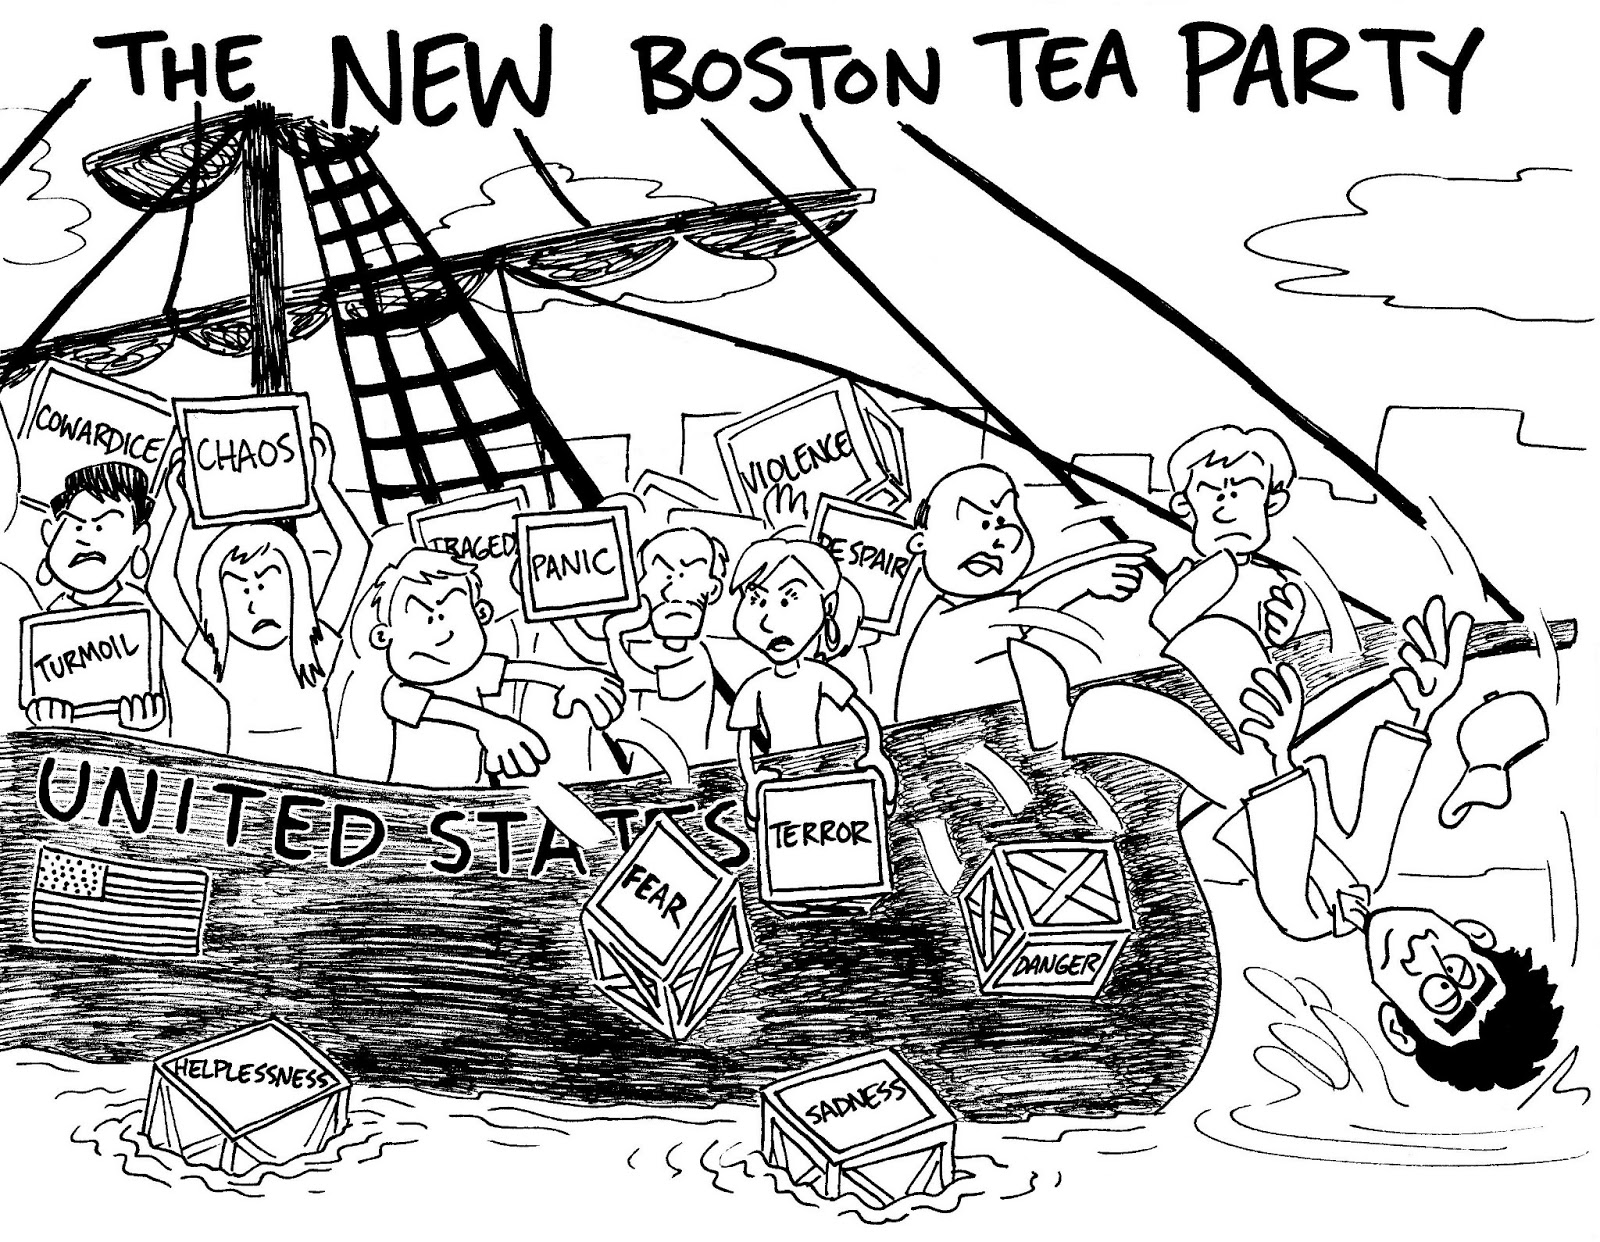 j squared the new boston tea party Ski Mobile for more on this cartoon click here